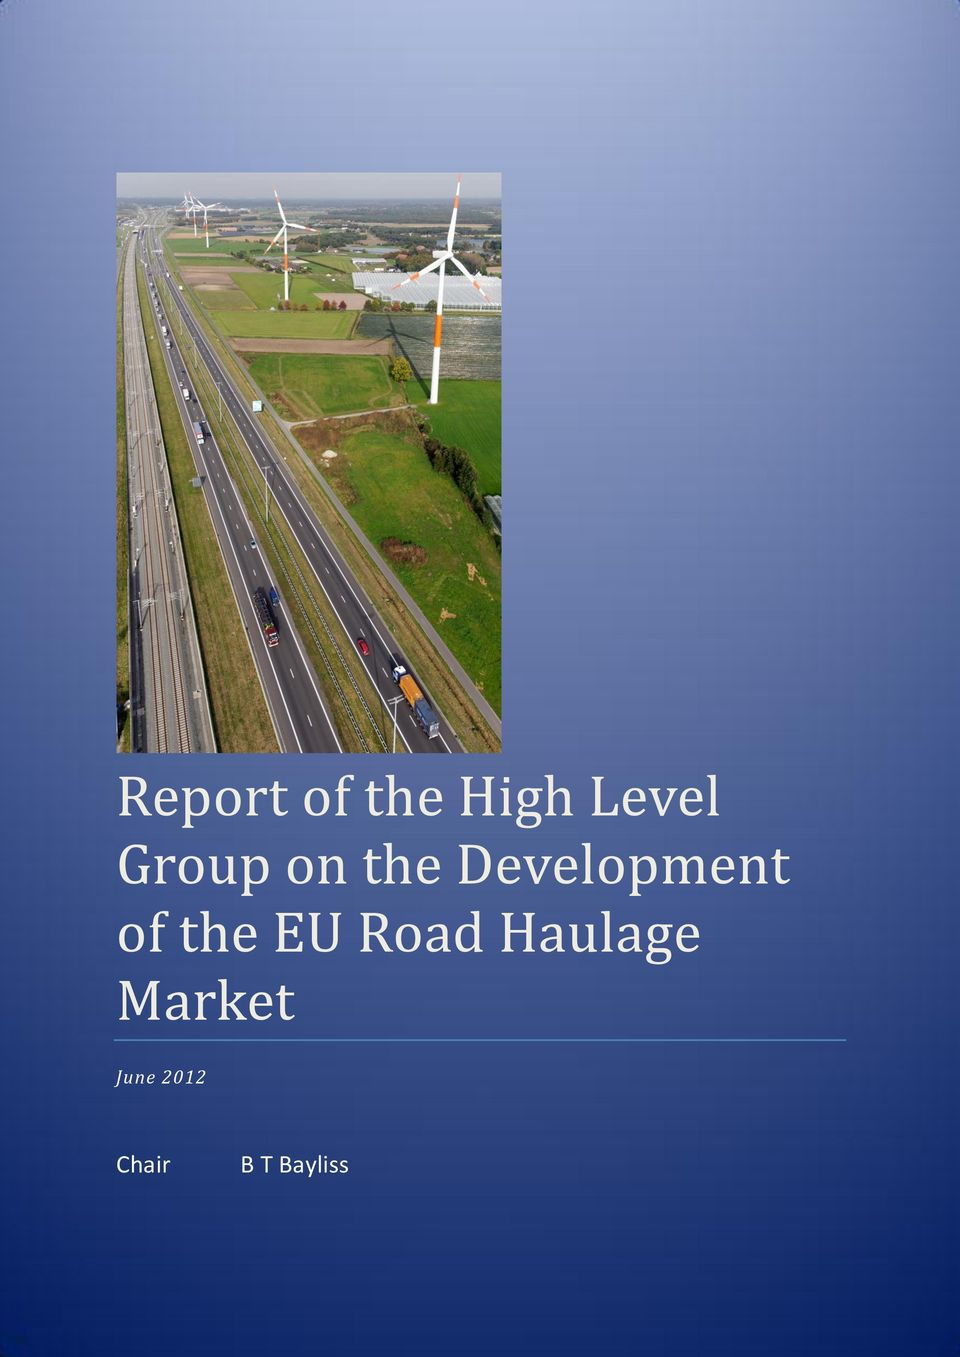 of the EU Road Haulage